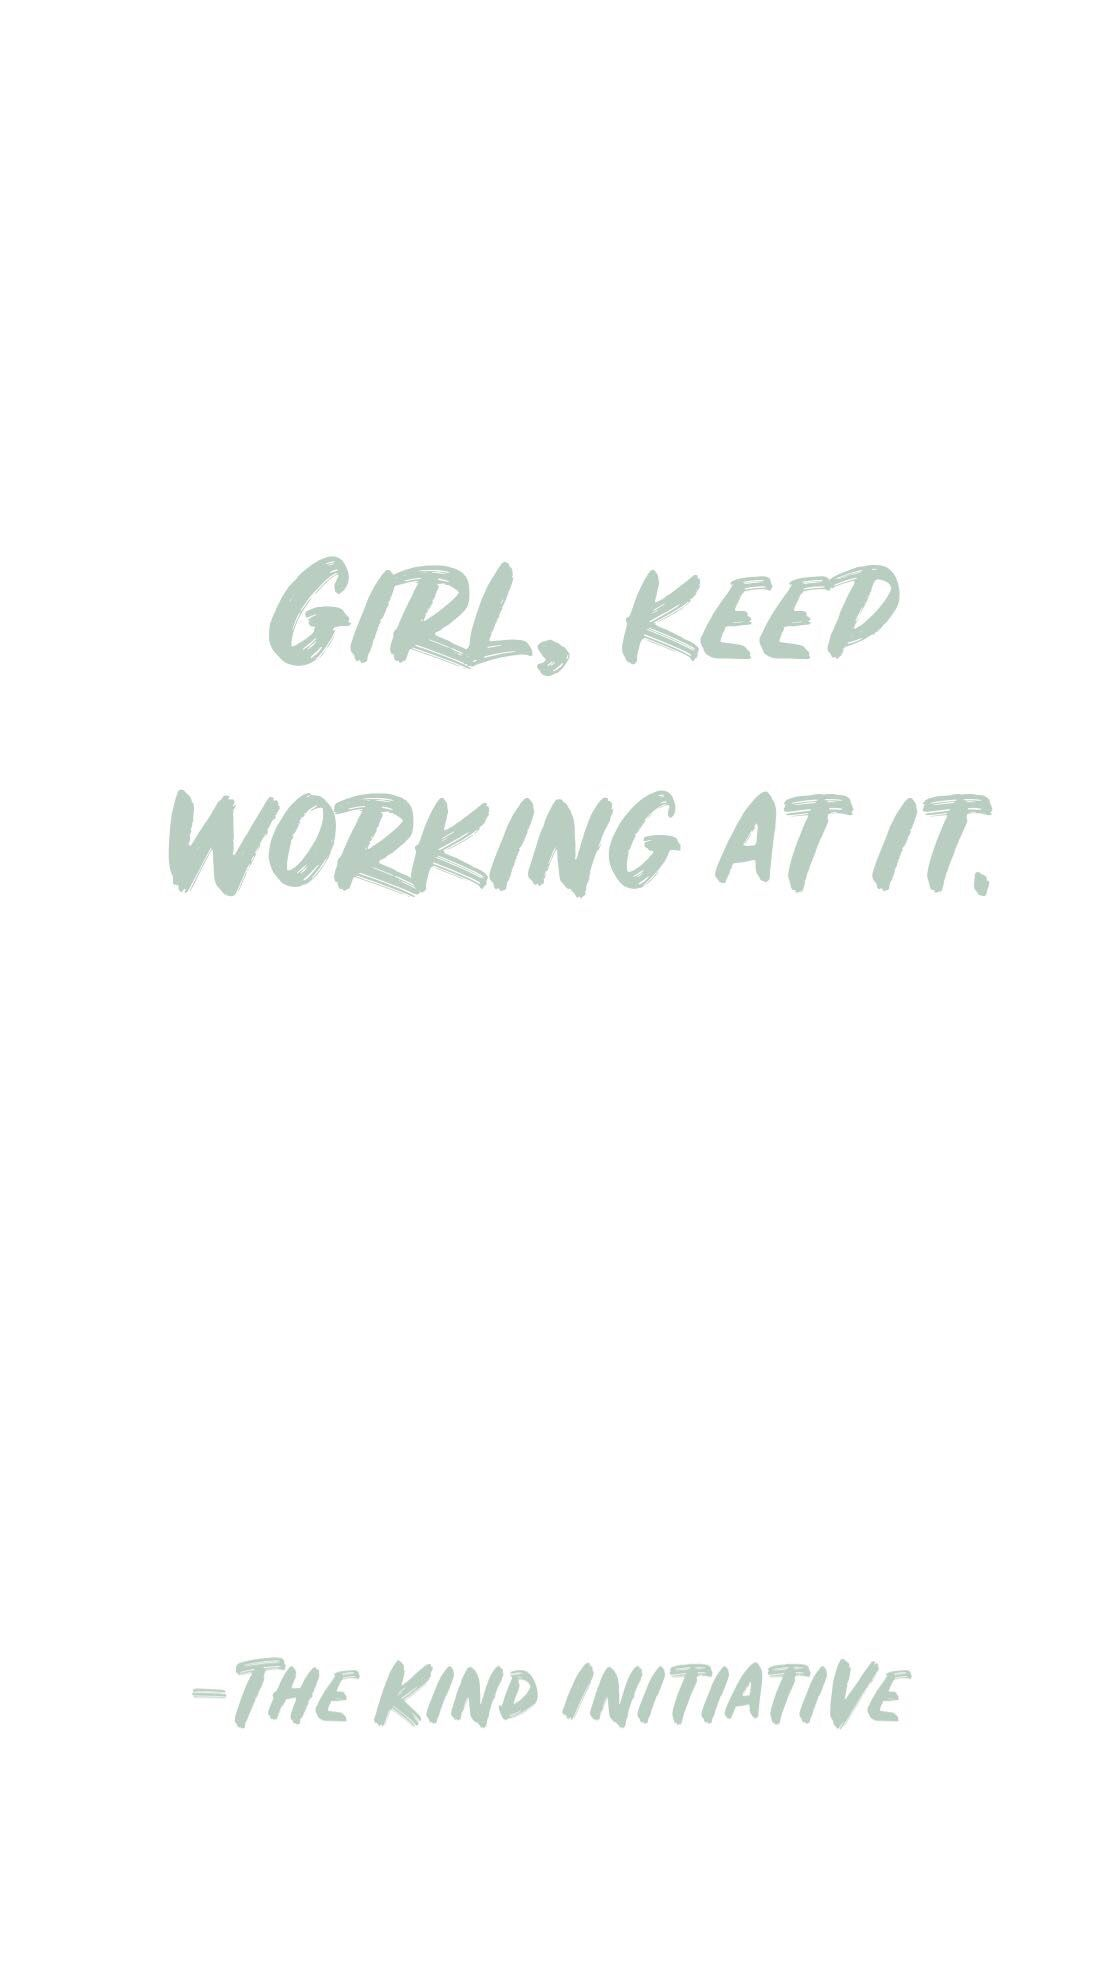 Girl, keep working at it.